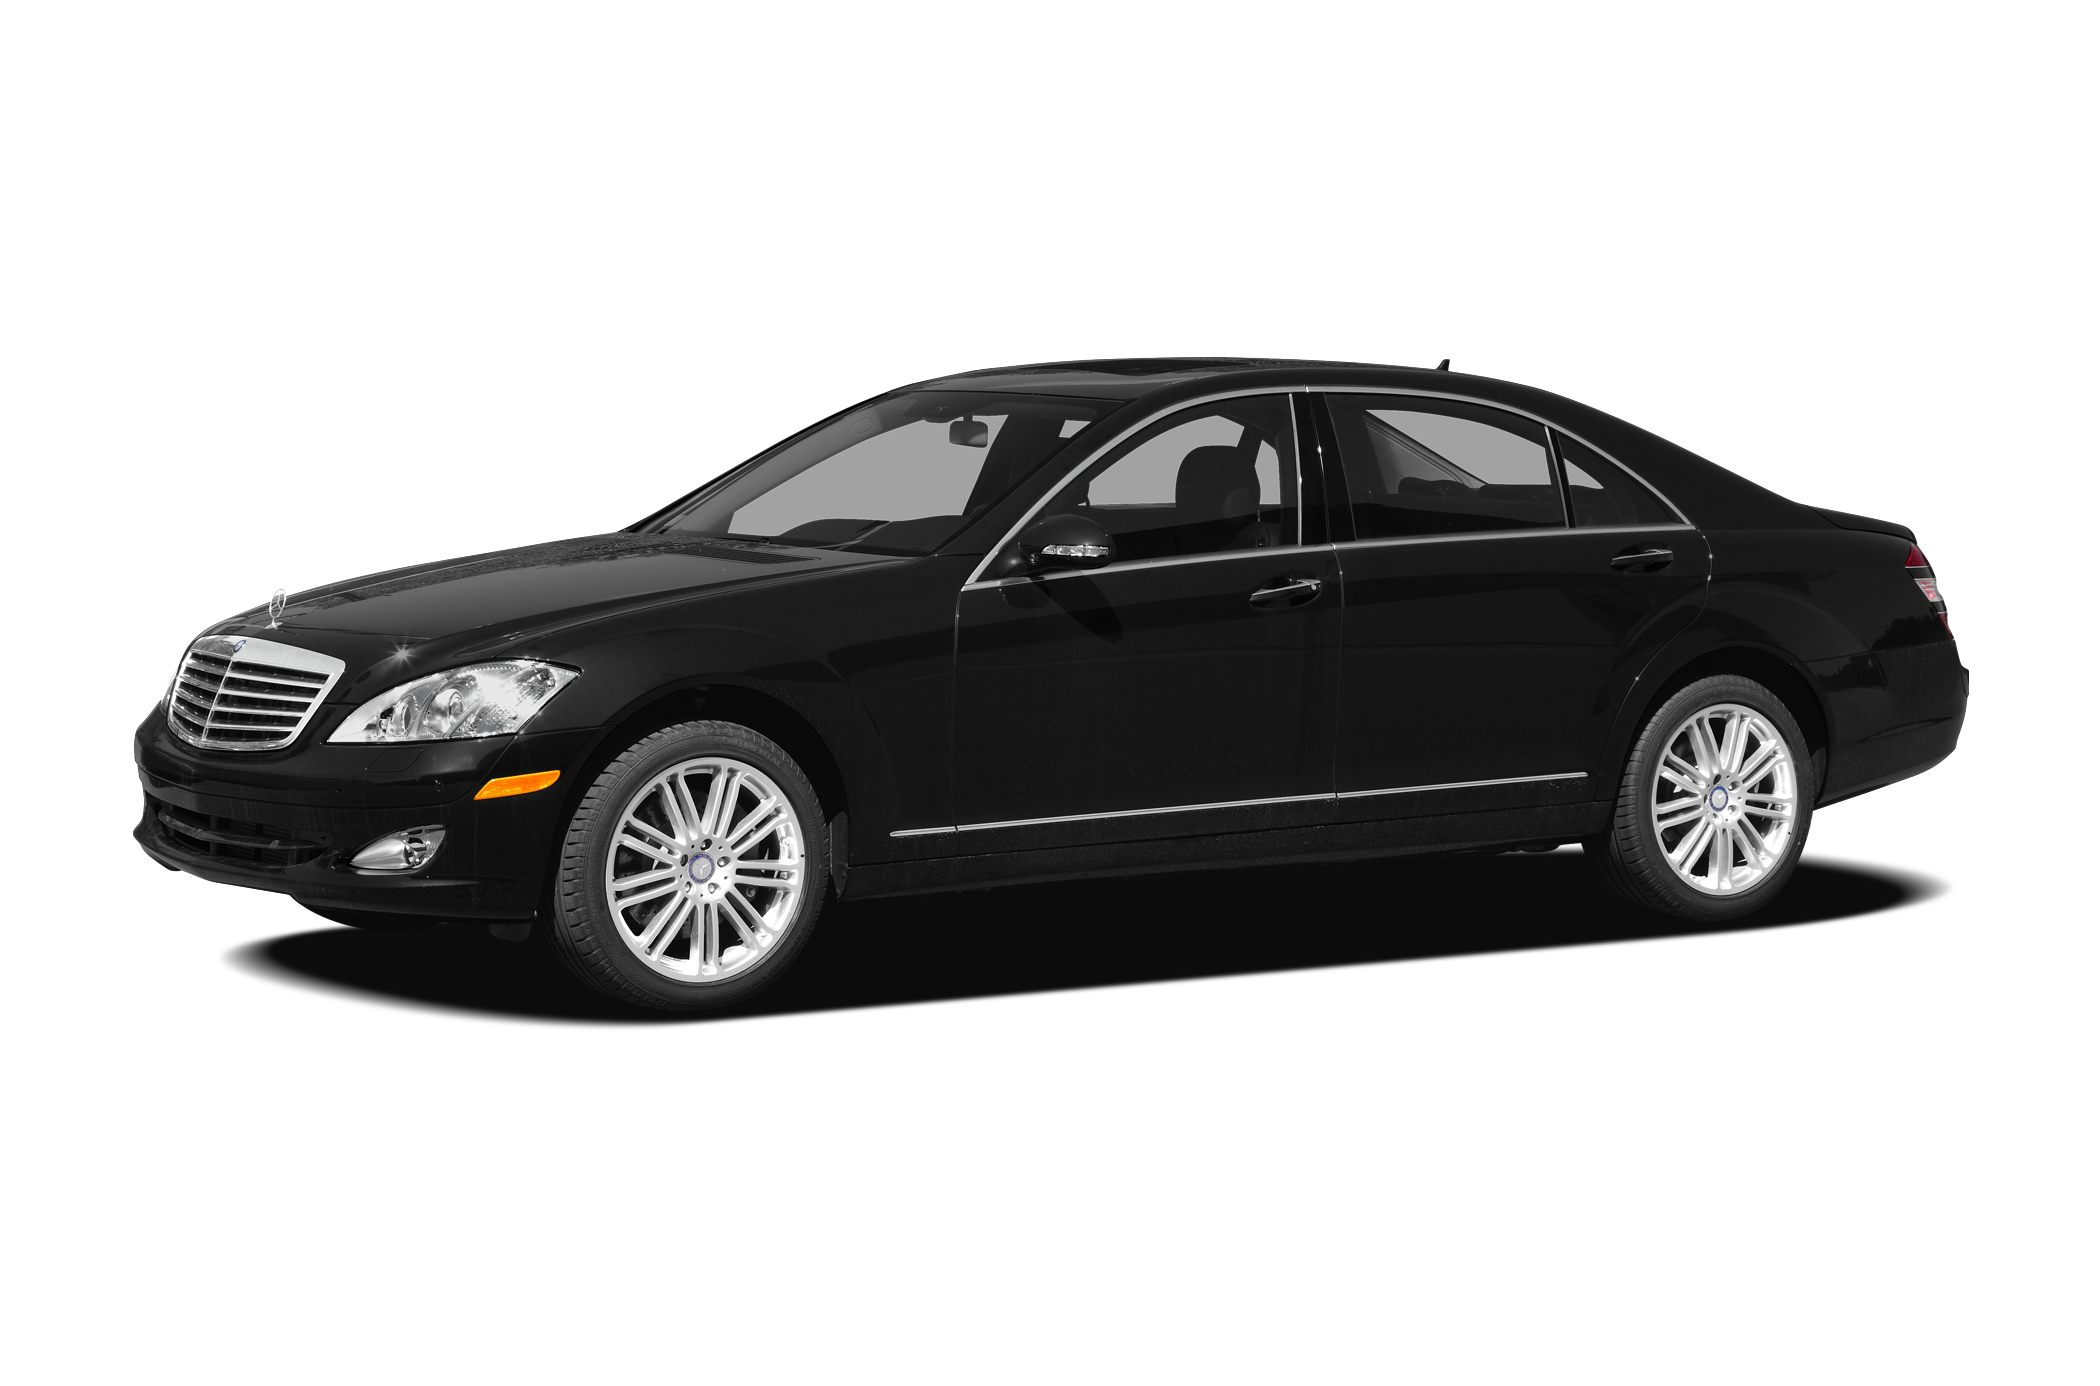 2009 Mercedes-Benz S-Class S550 4MATIC Sedan for sale in Charleston for $35,987 with 69,127 miles.